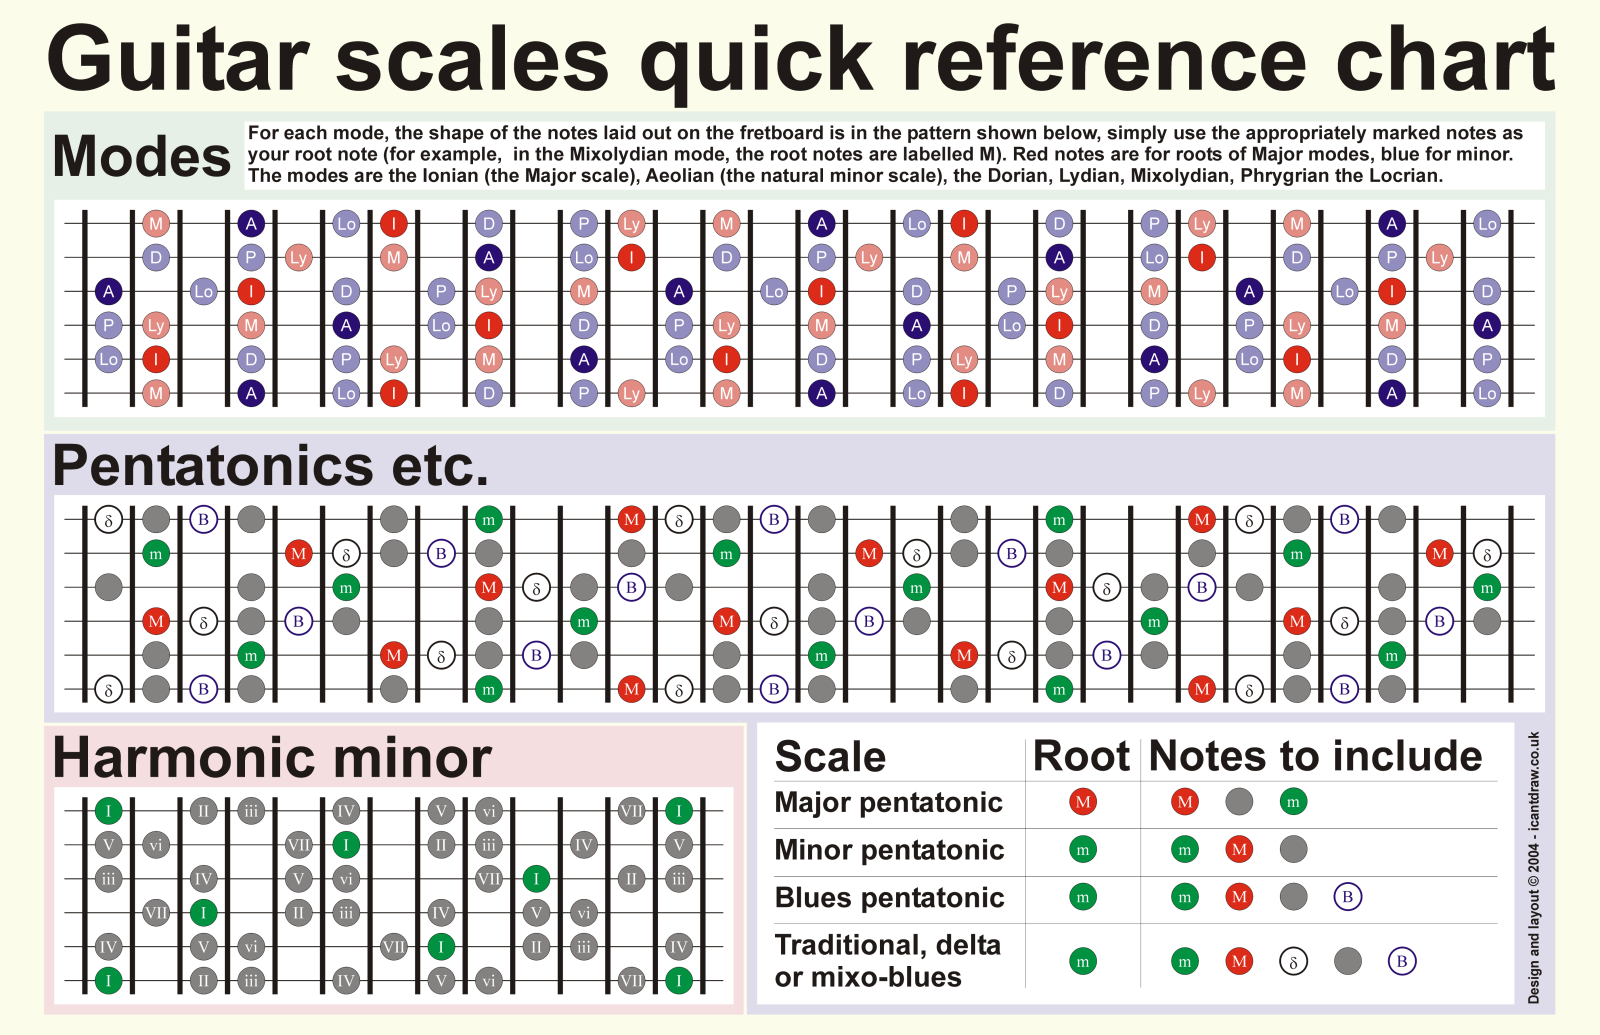 D Mandolin Scales Diagrams Wiring A Quick Guide To Mastering The Six Most Commonly Used 2 Finger Chords Scale Diagram